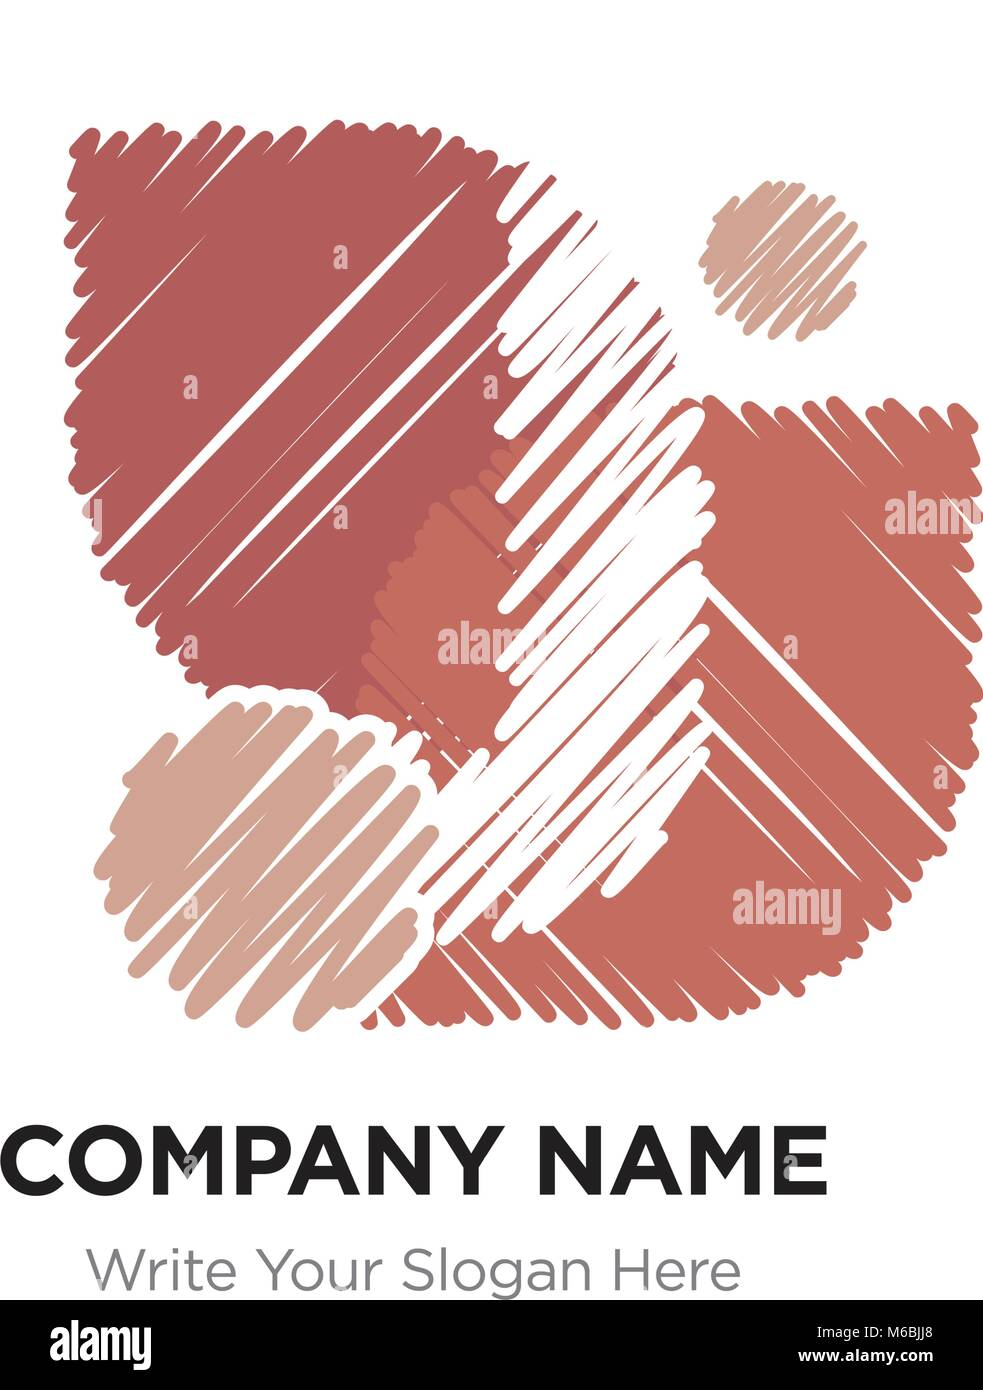 Letter J Logo Stock Photos & Letter J Logo Stock Images - Page 2 - Alamy